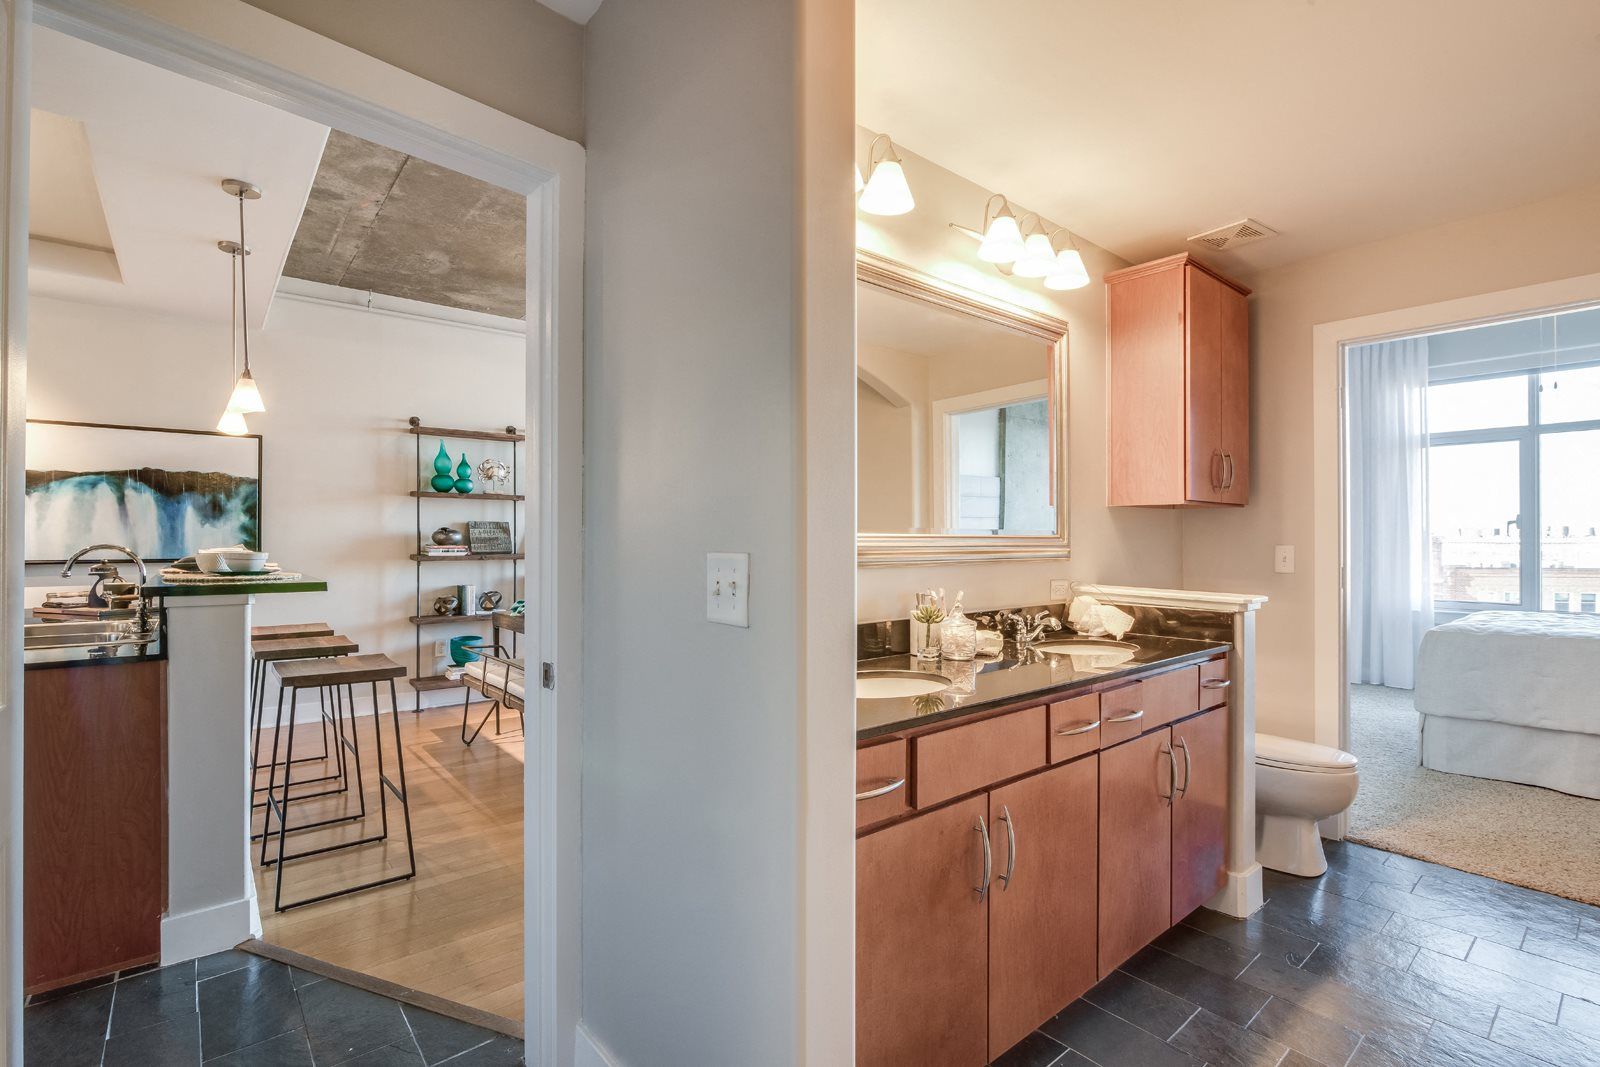 Granite Countertops in Kitchen and Bathrooms at Crescent at Fells Point by Windsor, Maryland, 21231